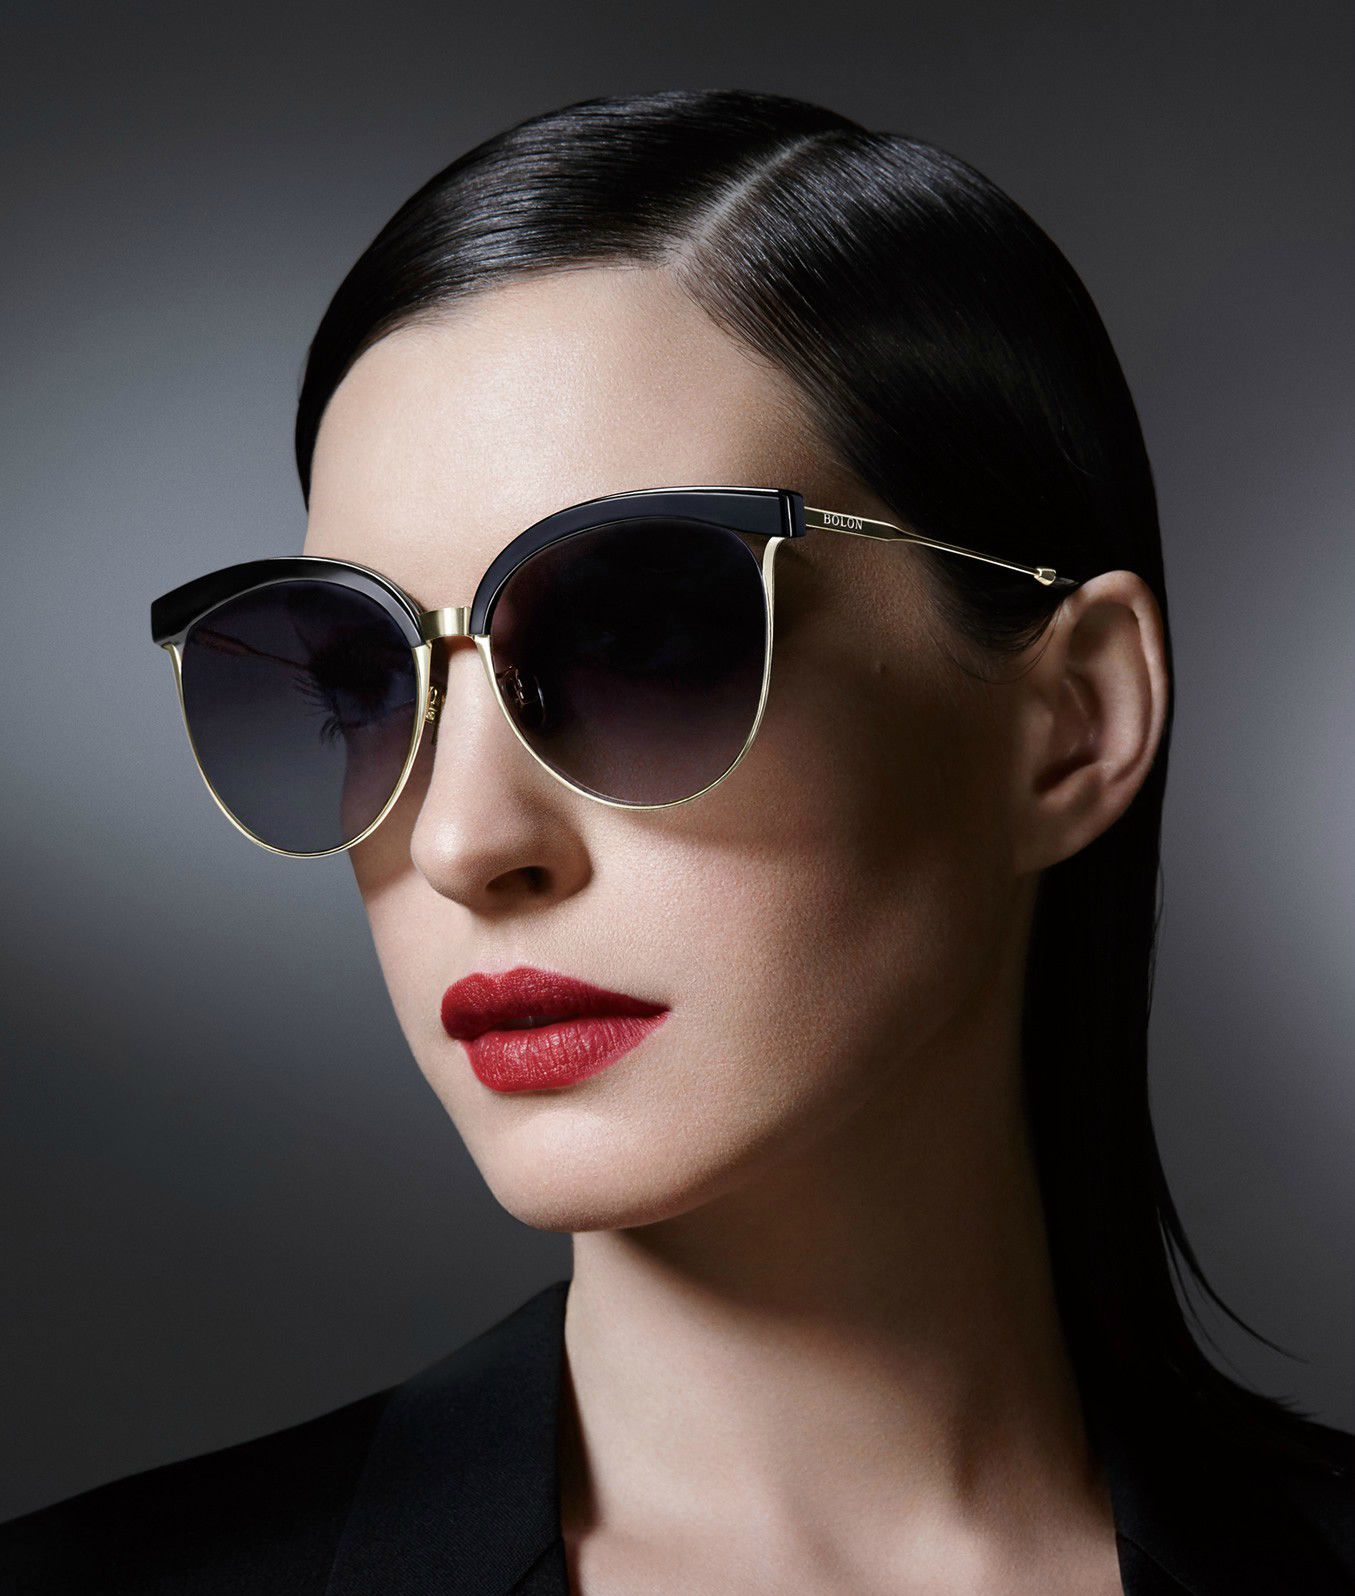 940c32b20f Anne Hathaway | photoshoot for the 2016 Bolon Eyewear Campaign ...